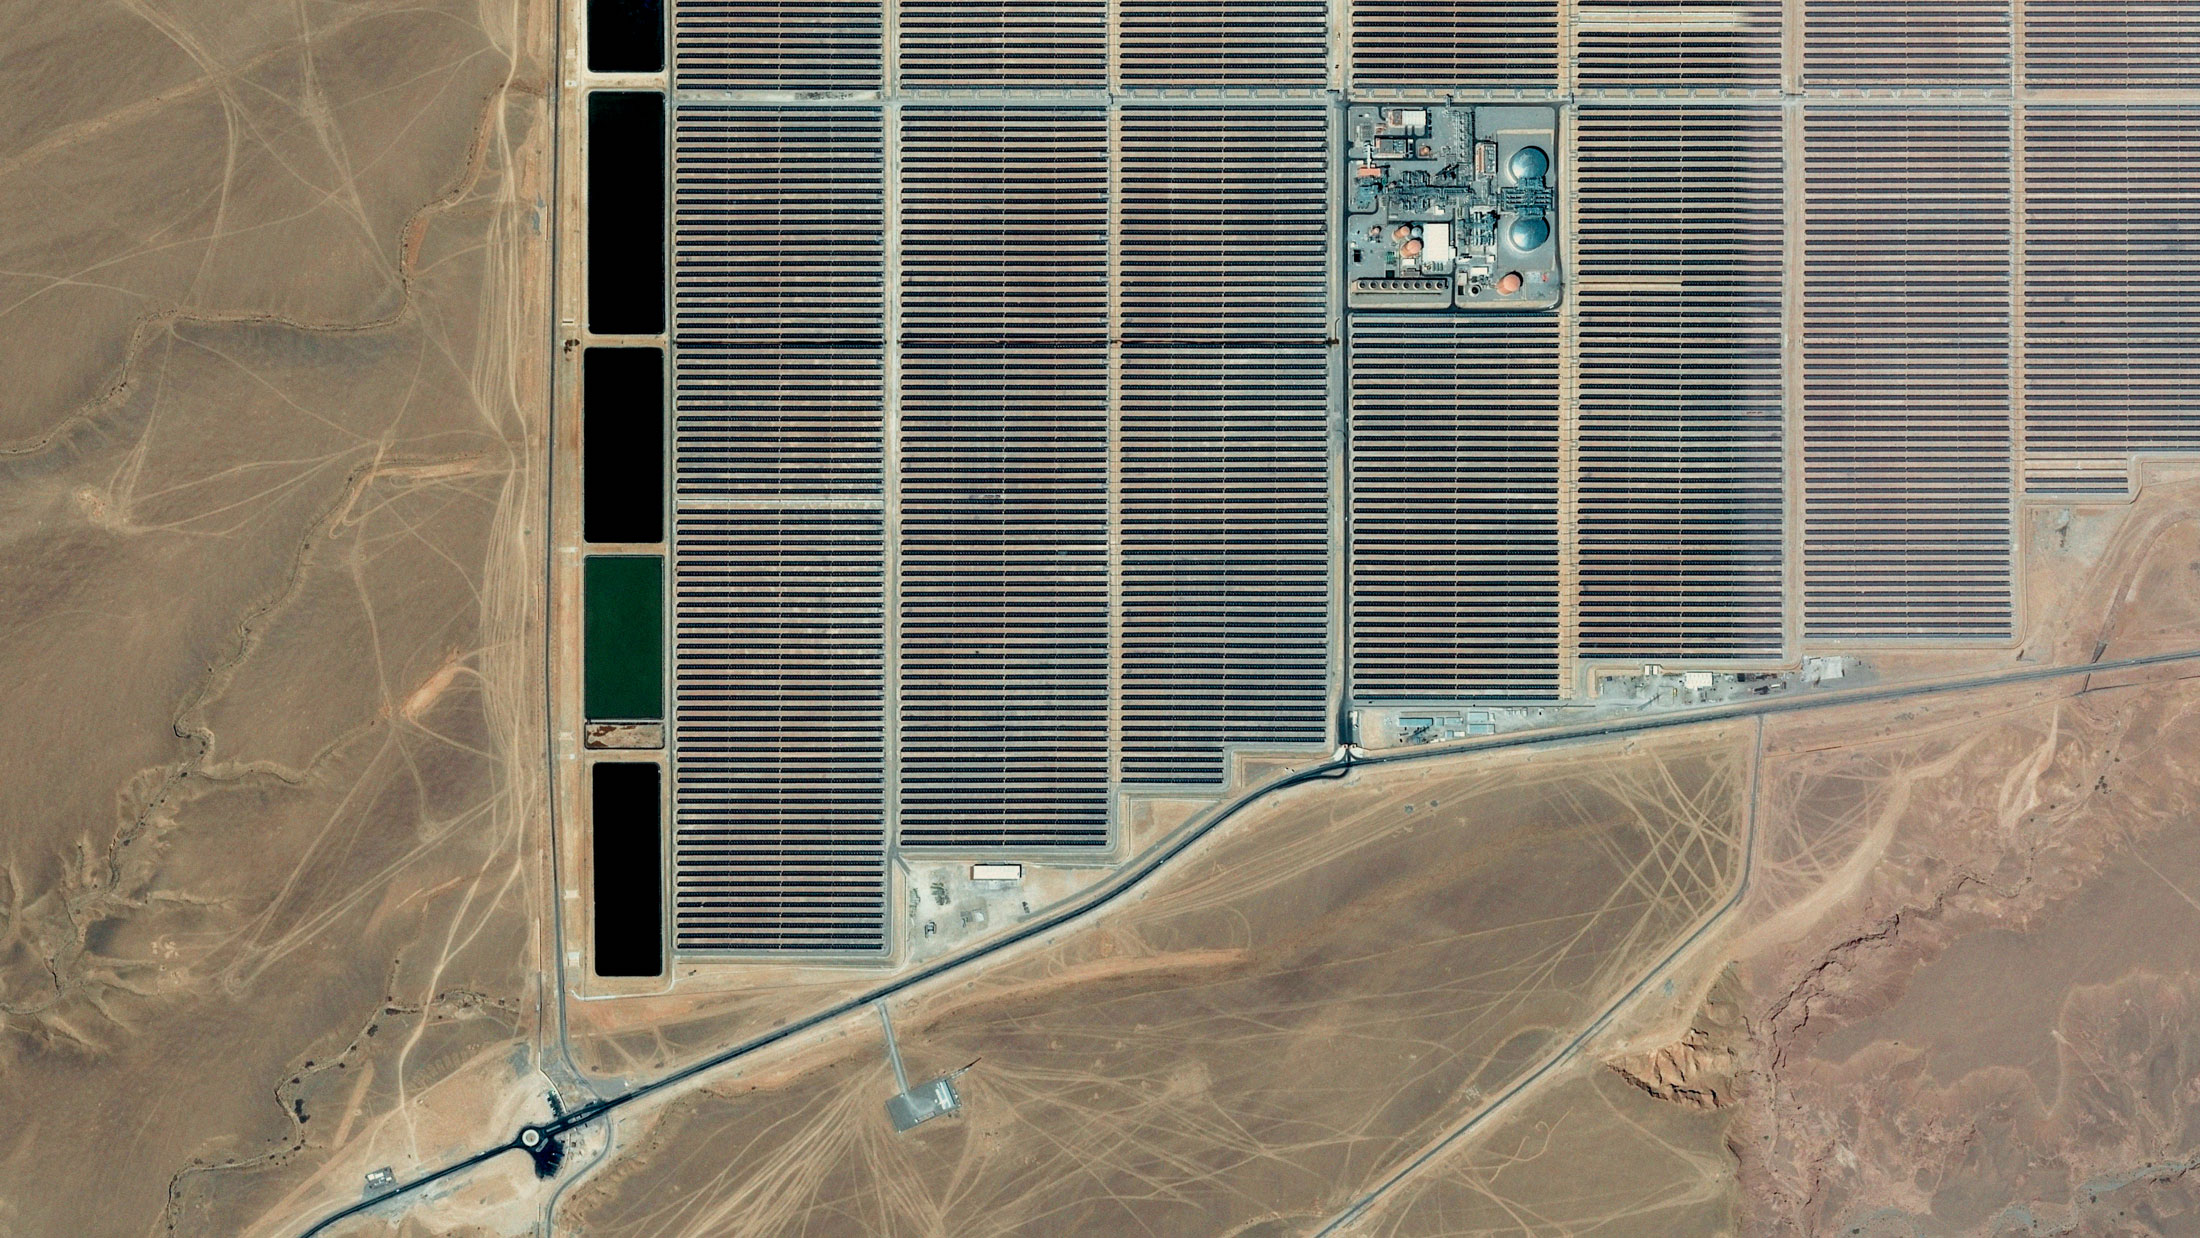 France is supporting the construction of Morocco's first entirely thermodynamic solar power plant, in Ouarzazate. Morocco was the largest recipient of France's ODA between 2012 and 2014.